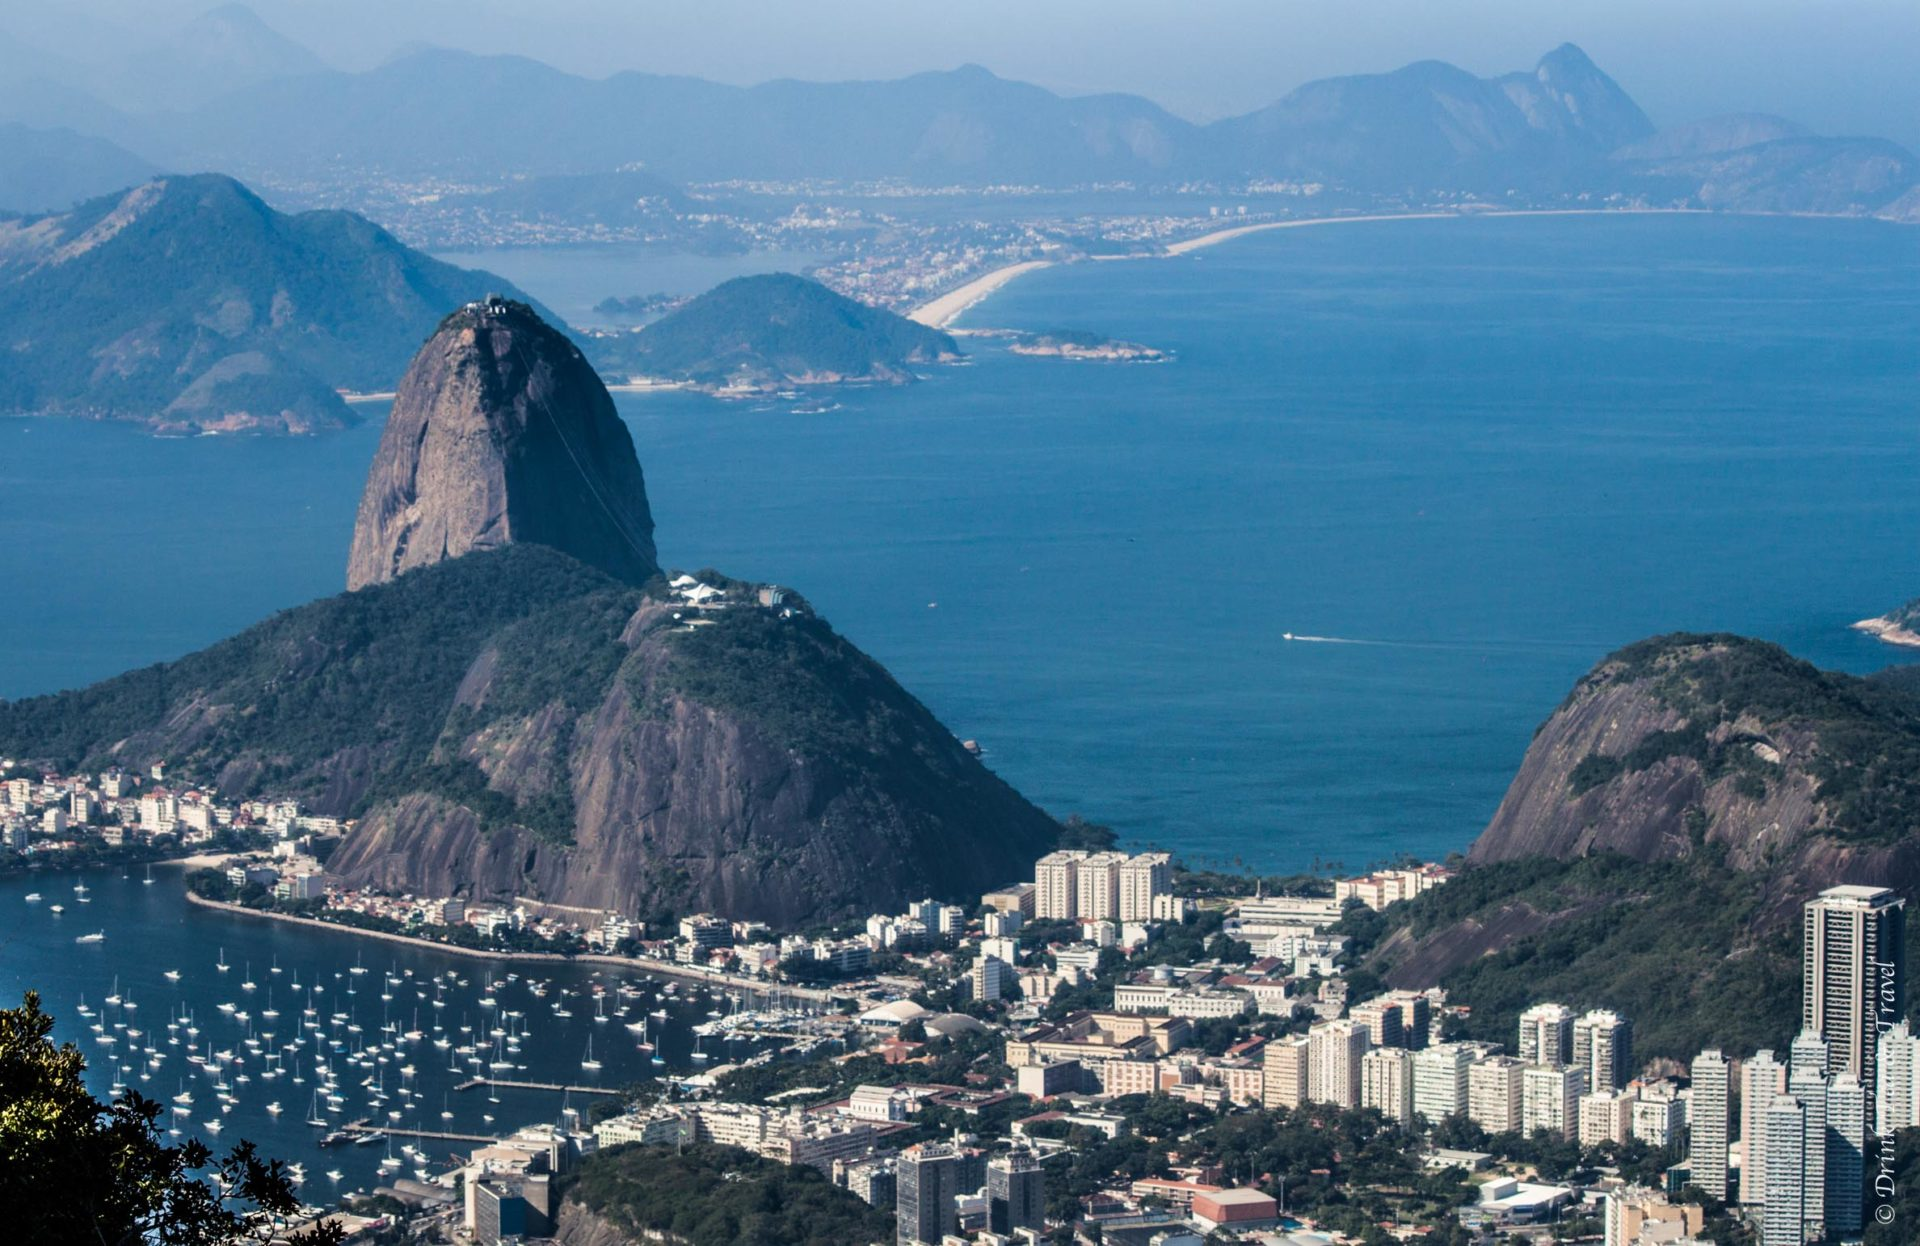 Sugarloaf Mountain, view from the top of Christ the Redeemer. Brazil